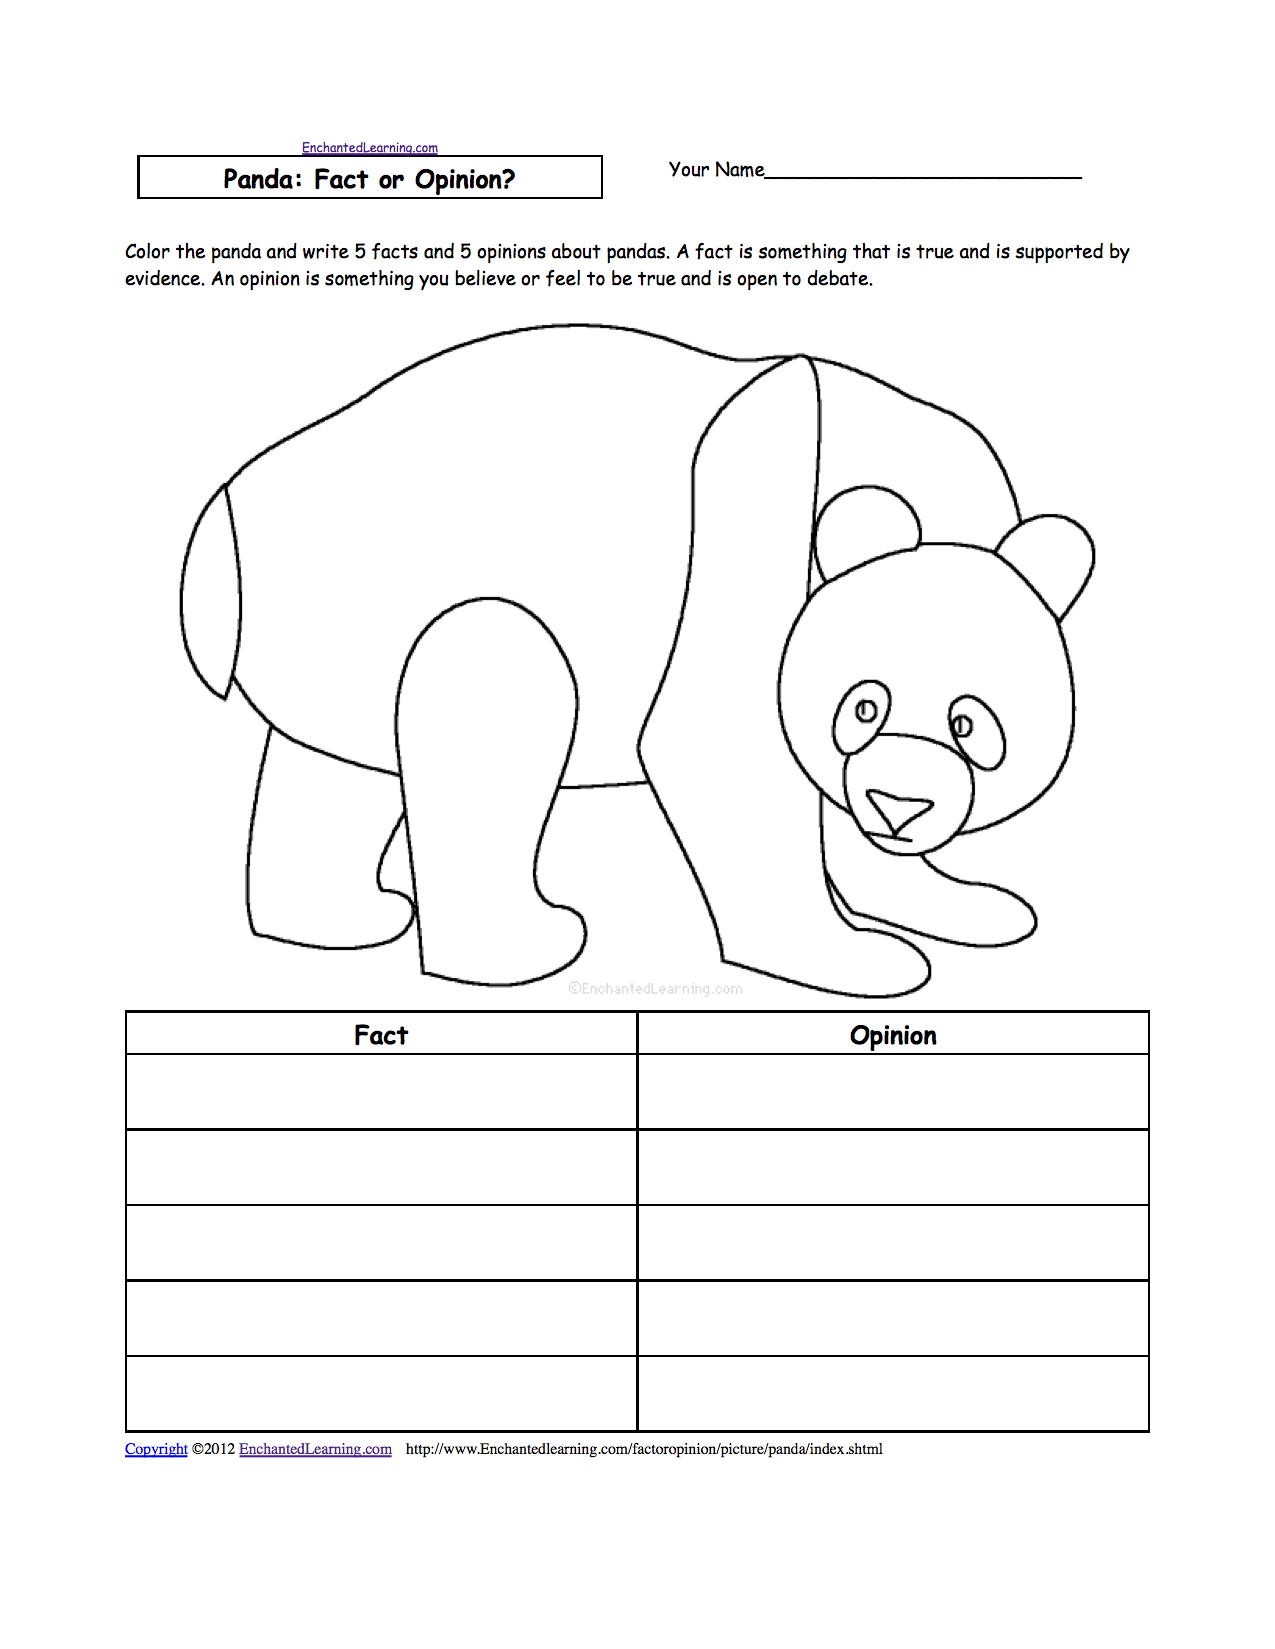 Worksheet Fact And Opinion Worksheets fact or opinion worksheets to print enchantedlearning com color and write facts opinions